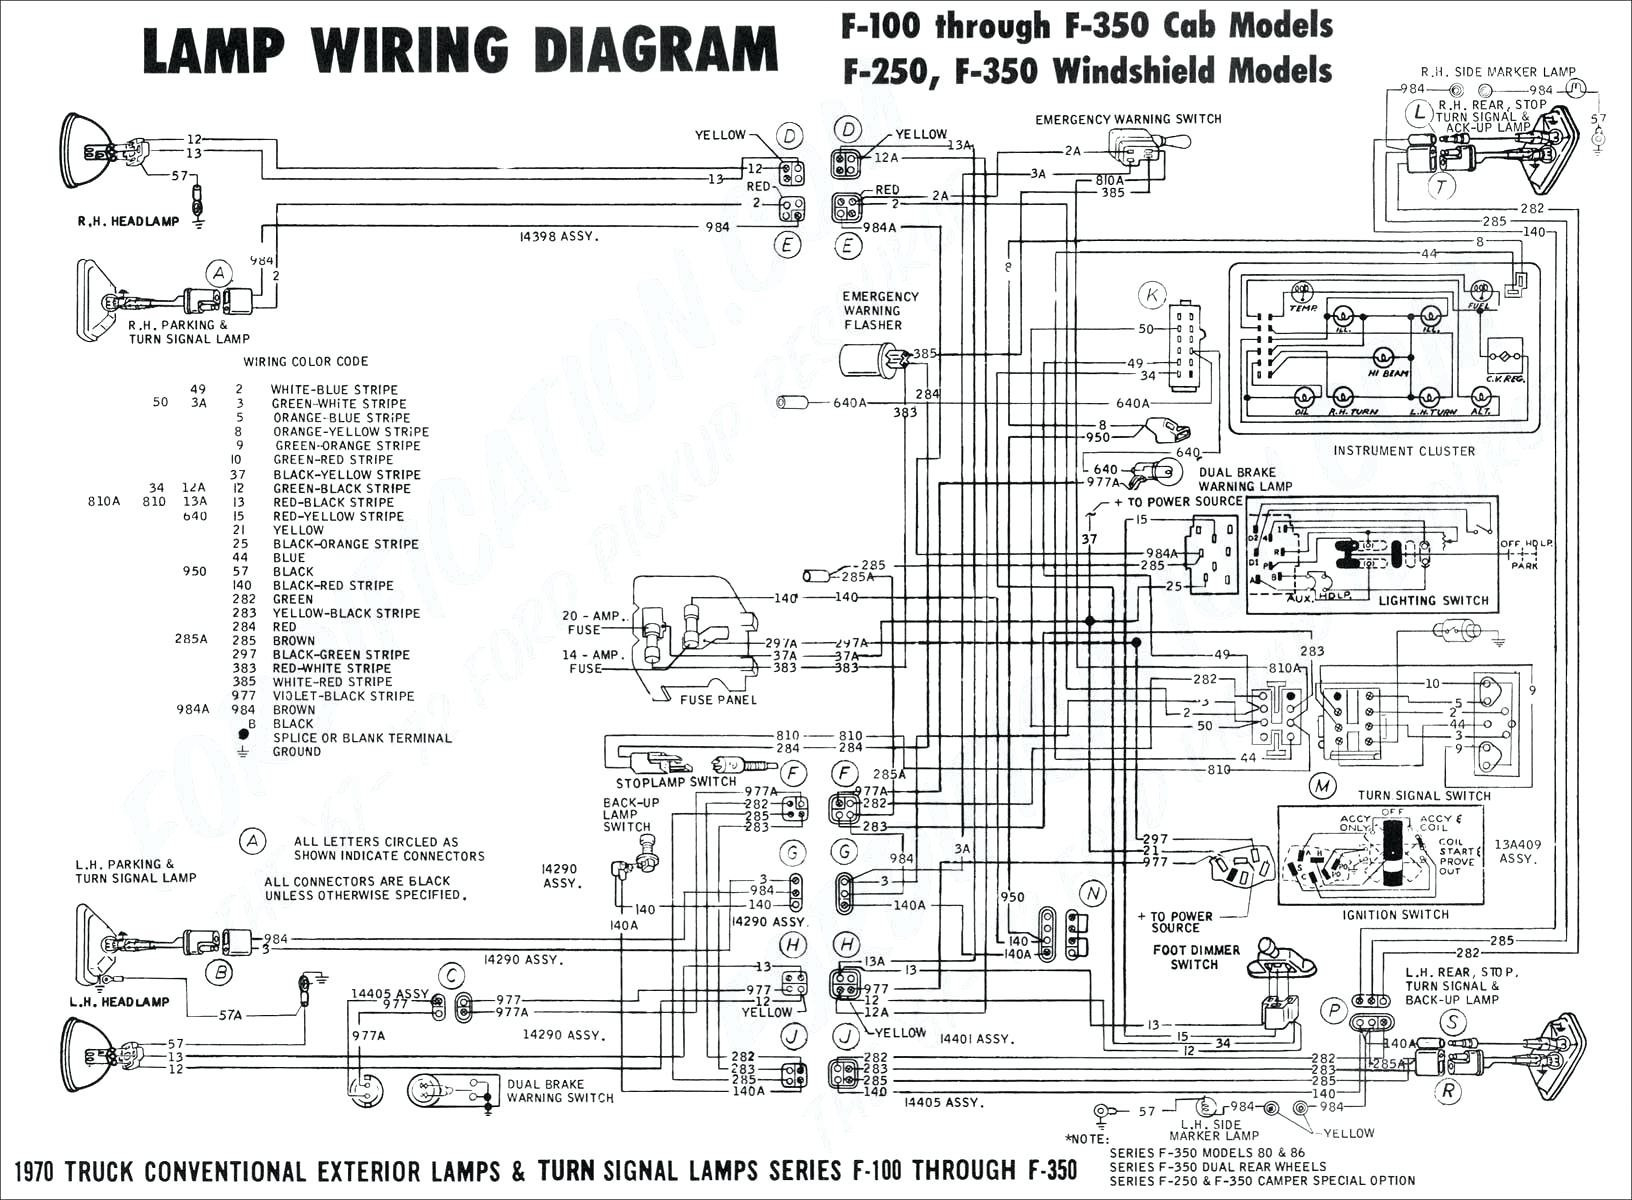 Power Ke Wiring Diagram Free Download Schematic - Wiring ... on